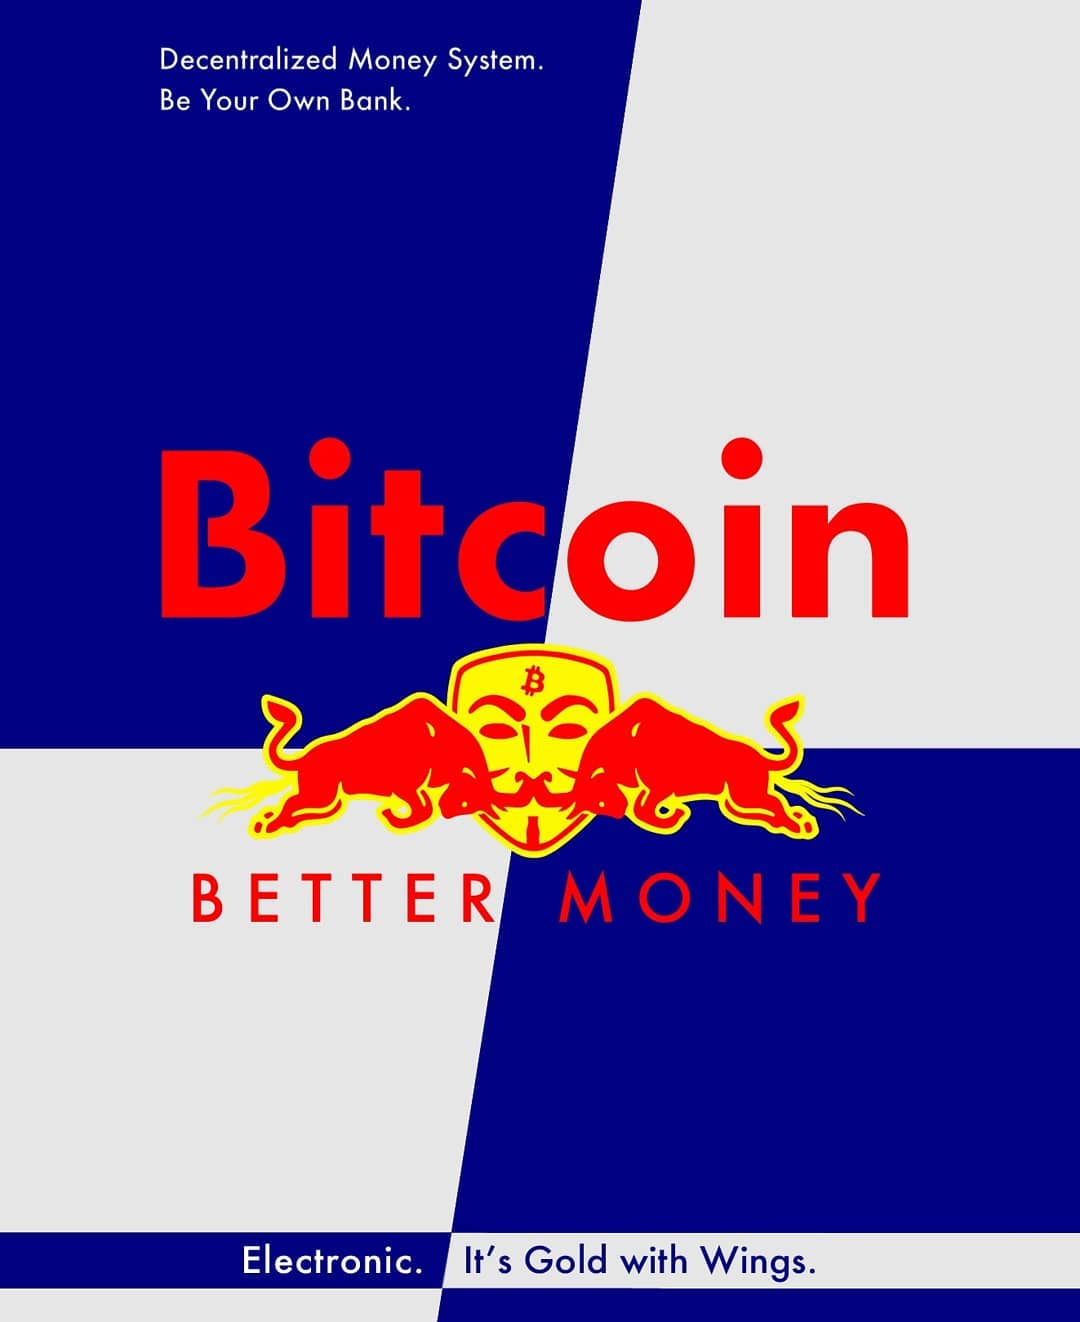 Bitcoin is better Money